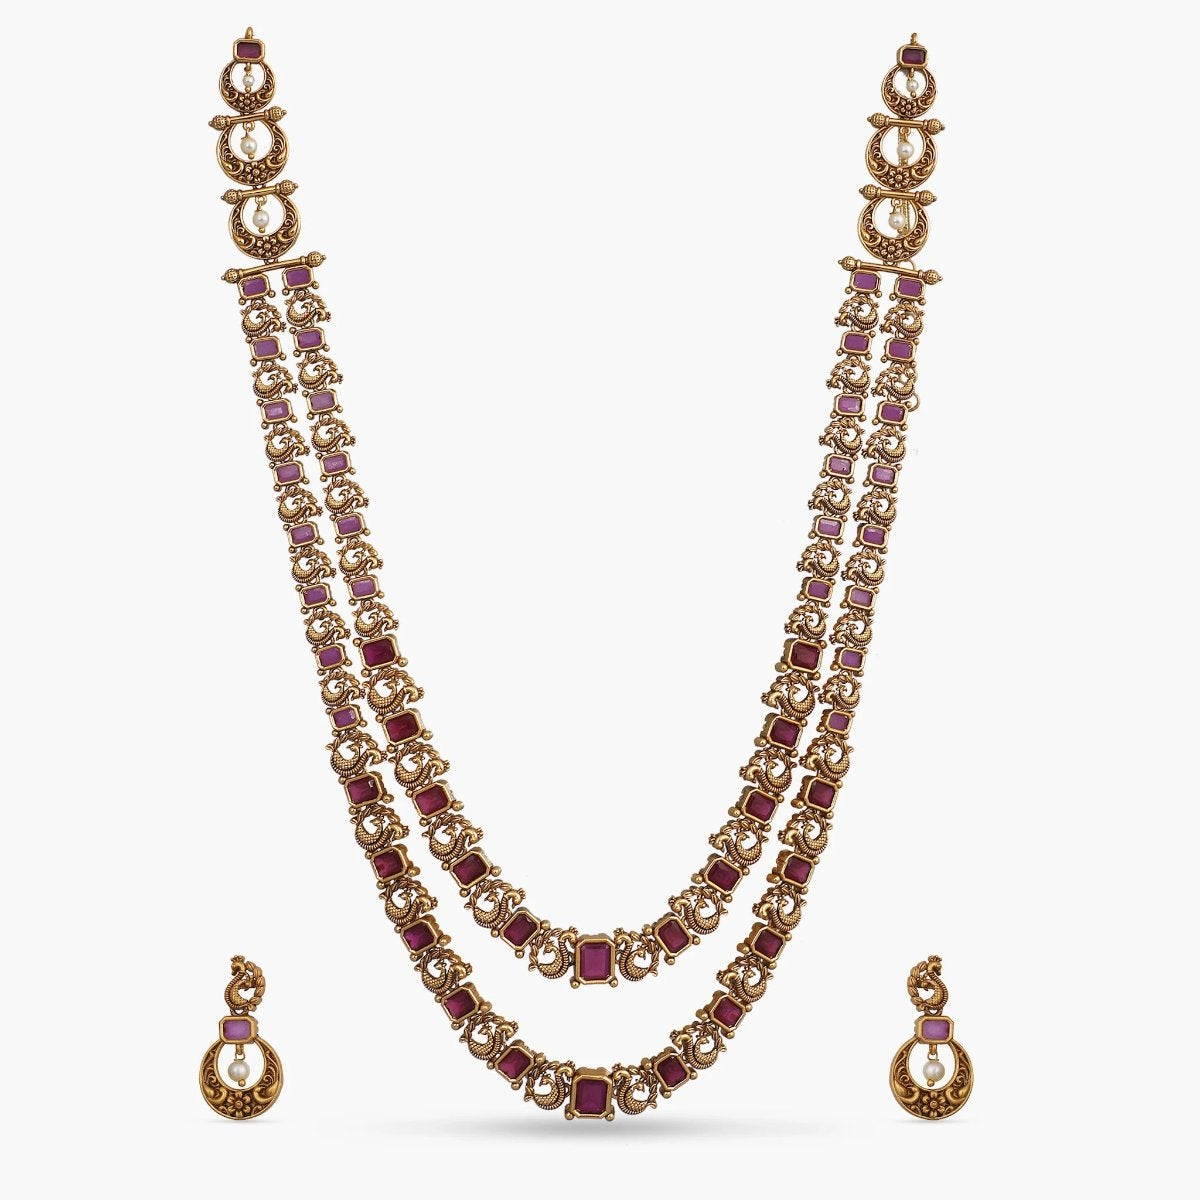 Hemani Antique Long Necklace Set